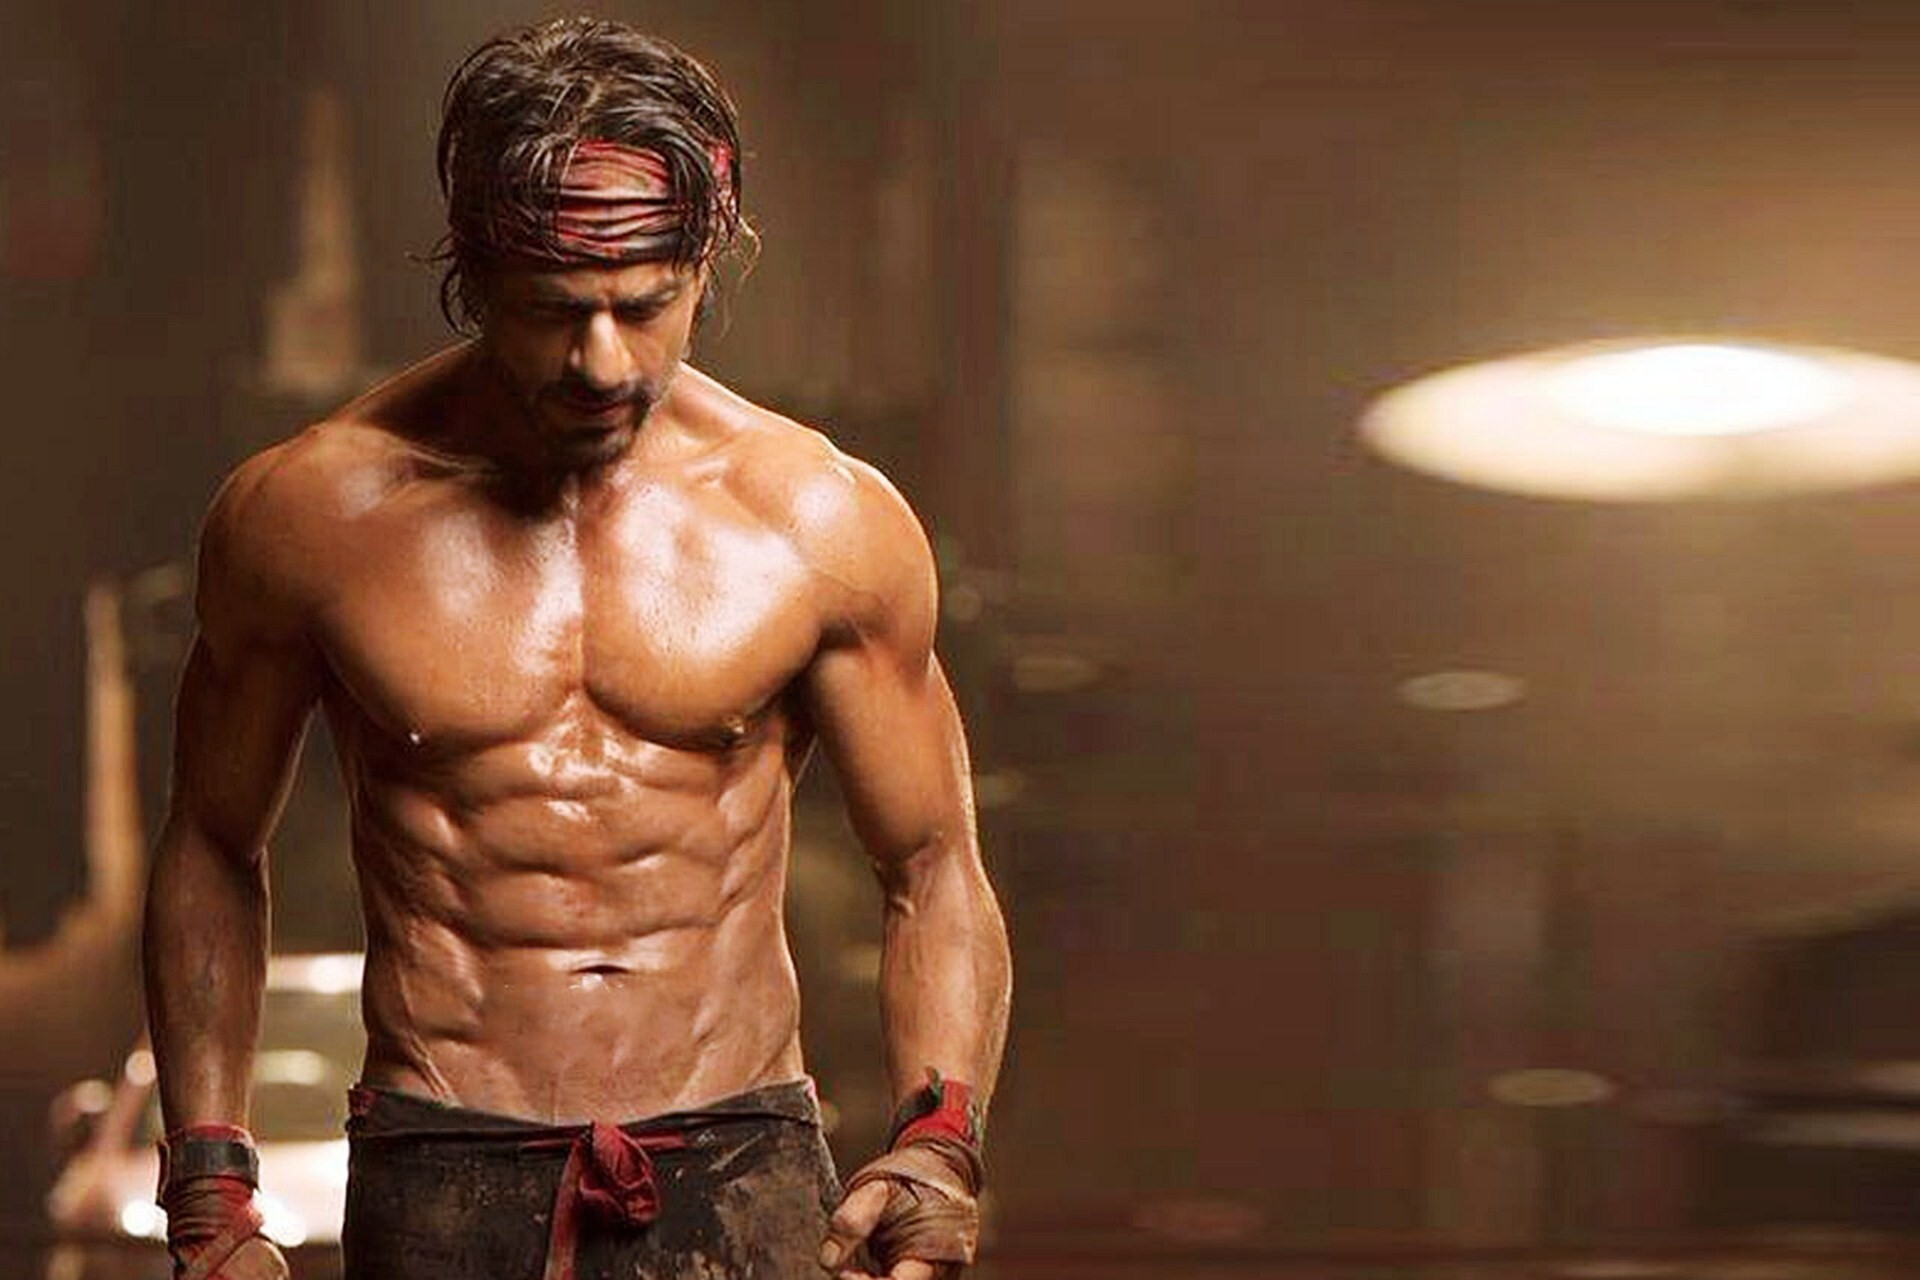 famous actor shahrukh khan 6 pack body in happy new year movie hd